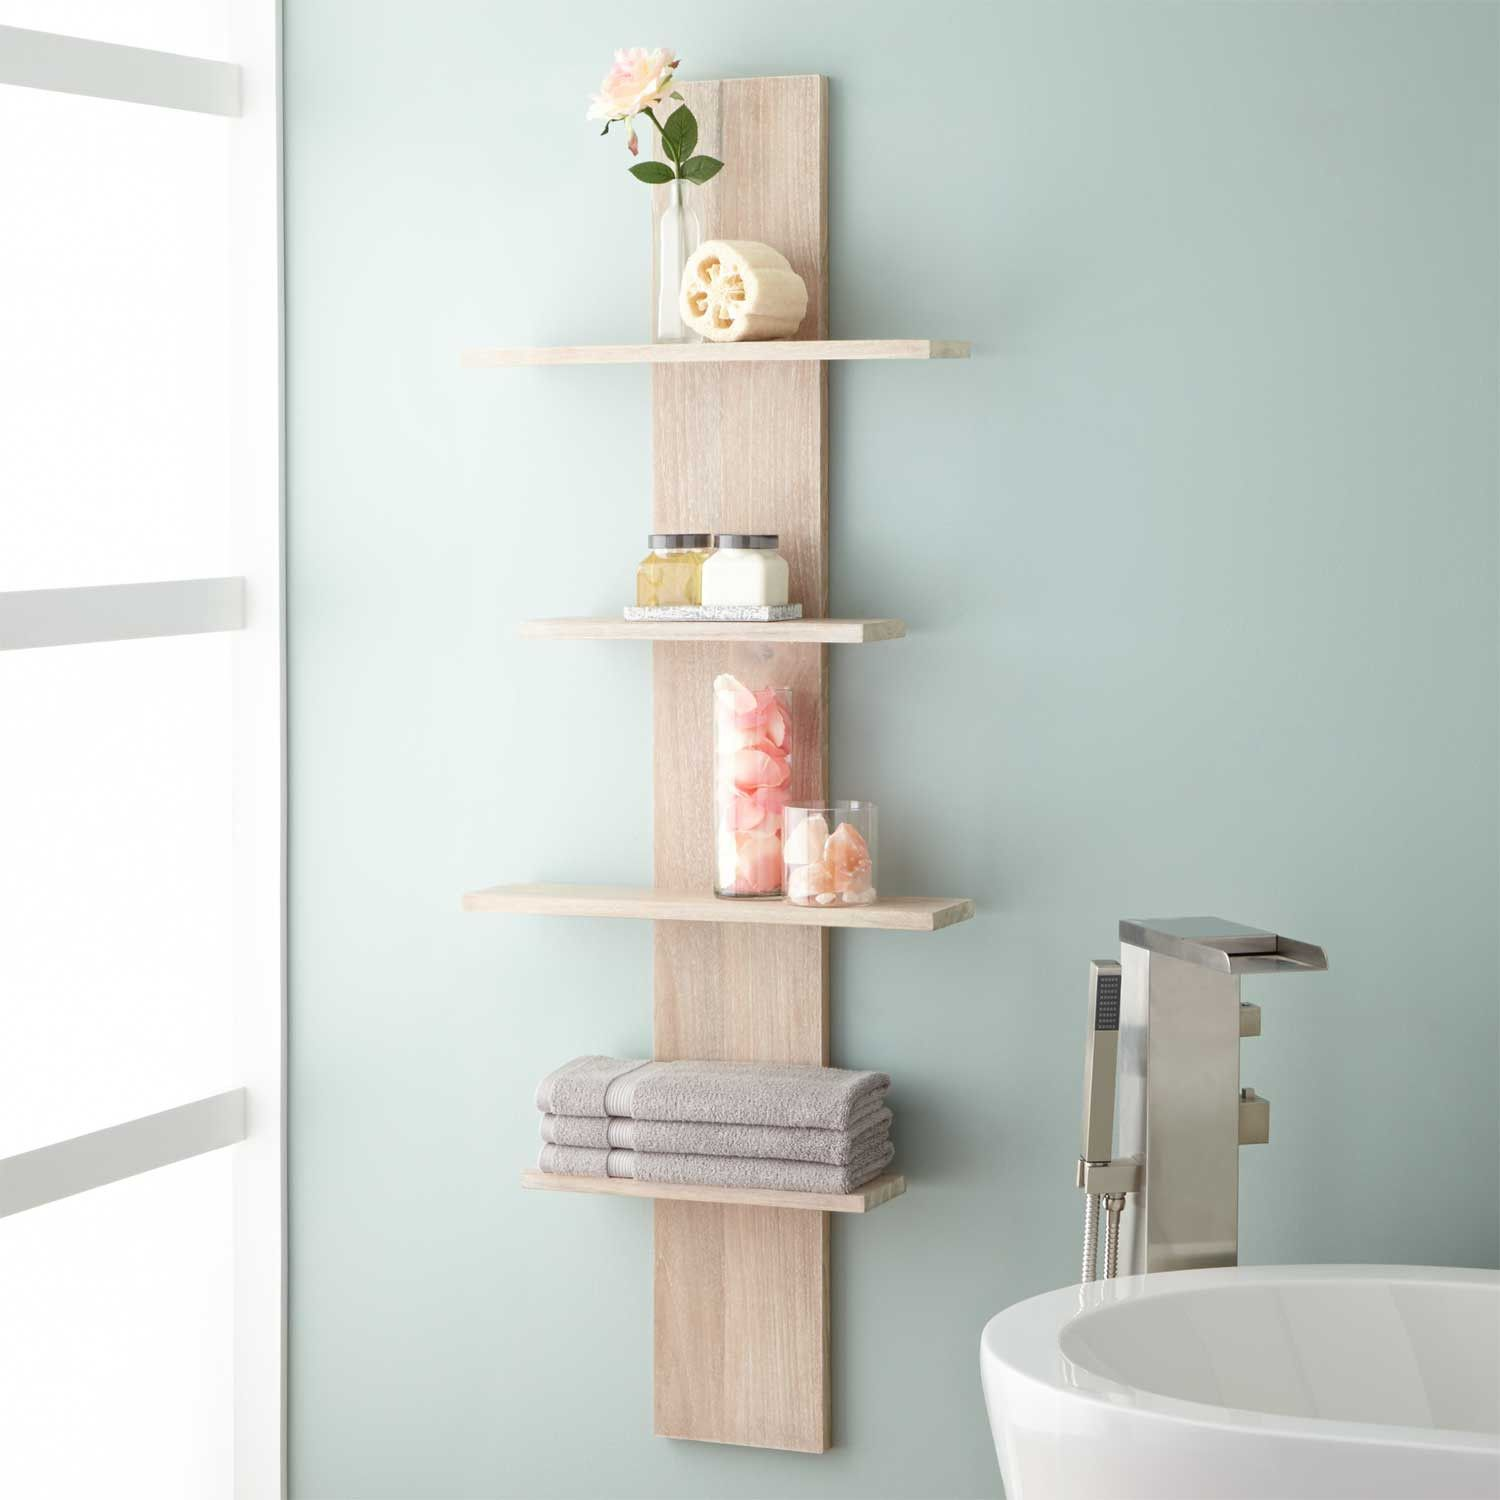 Hilarious Bathroom Ikea Small Wall Shelf Bathroom Wulan Hanging Bathroom Shelf Four Shelves Wash Wulan Hanging Bathroom Shelf Four Shelves Bathroom Wall Shelves bathroom Wall Shelf For Bathroom